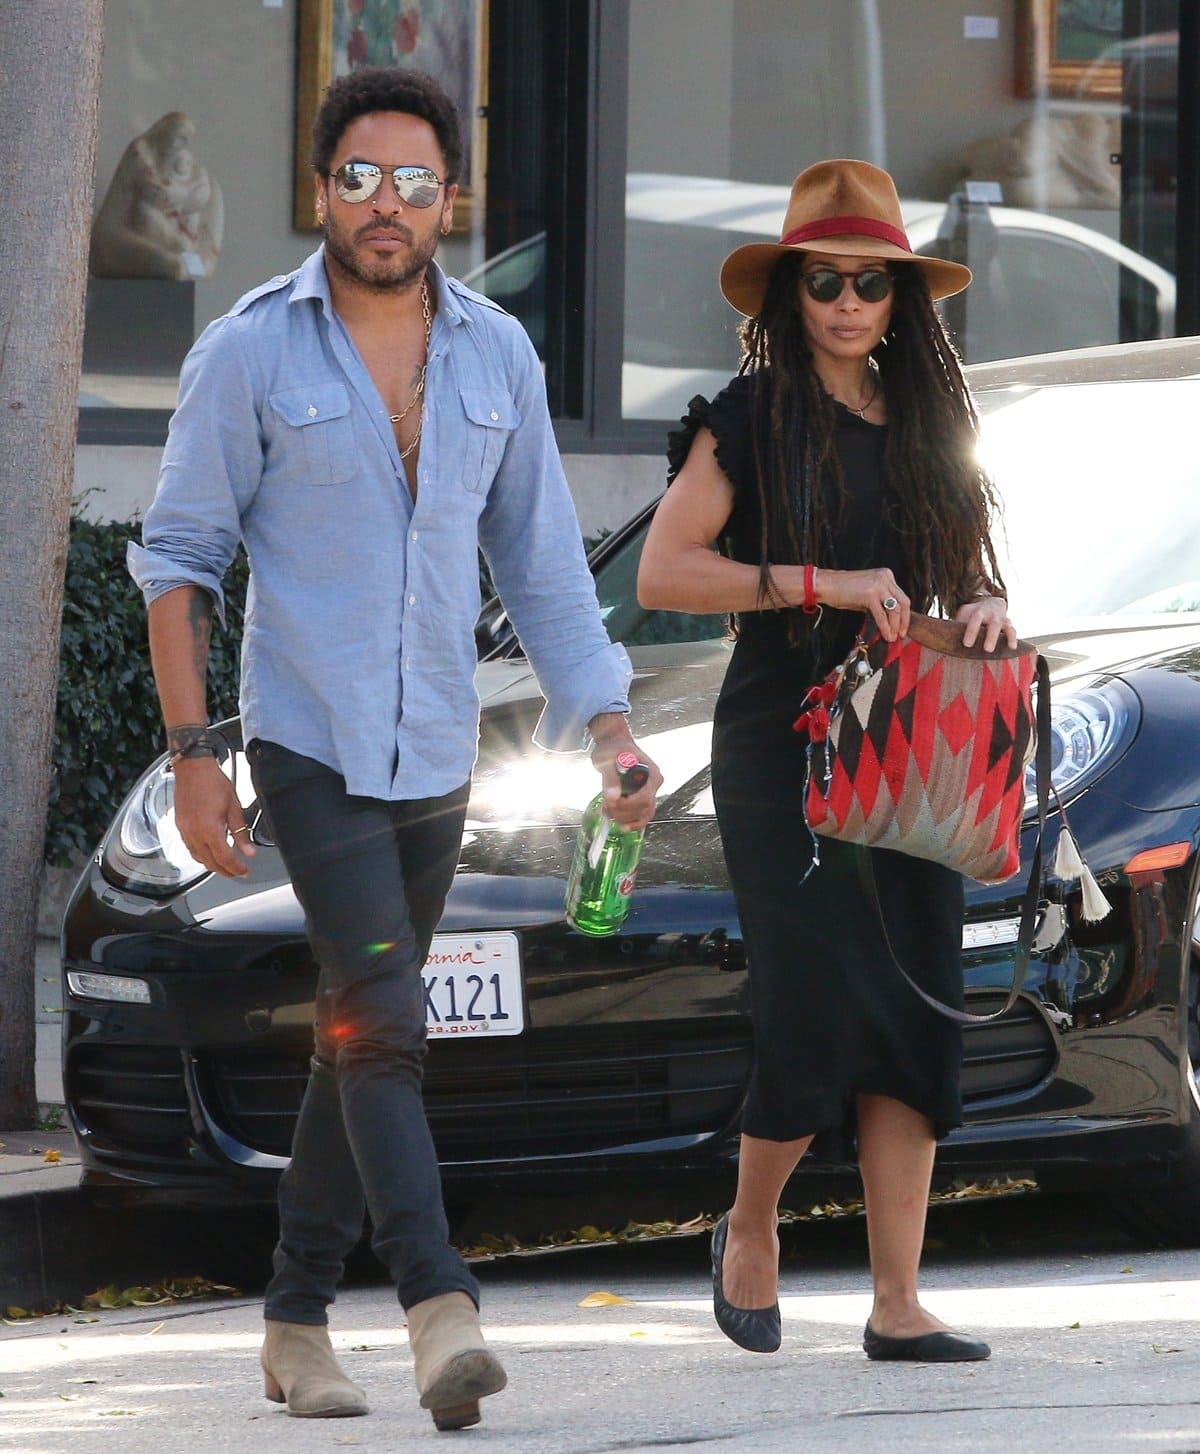 Lenny Kravitz and his ex-wife Lisa Bonet go for lunch together at Gracias Madre Restaurant in Beverly Hills